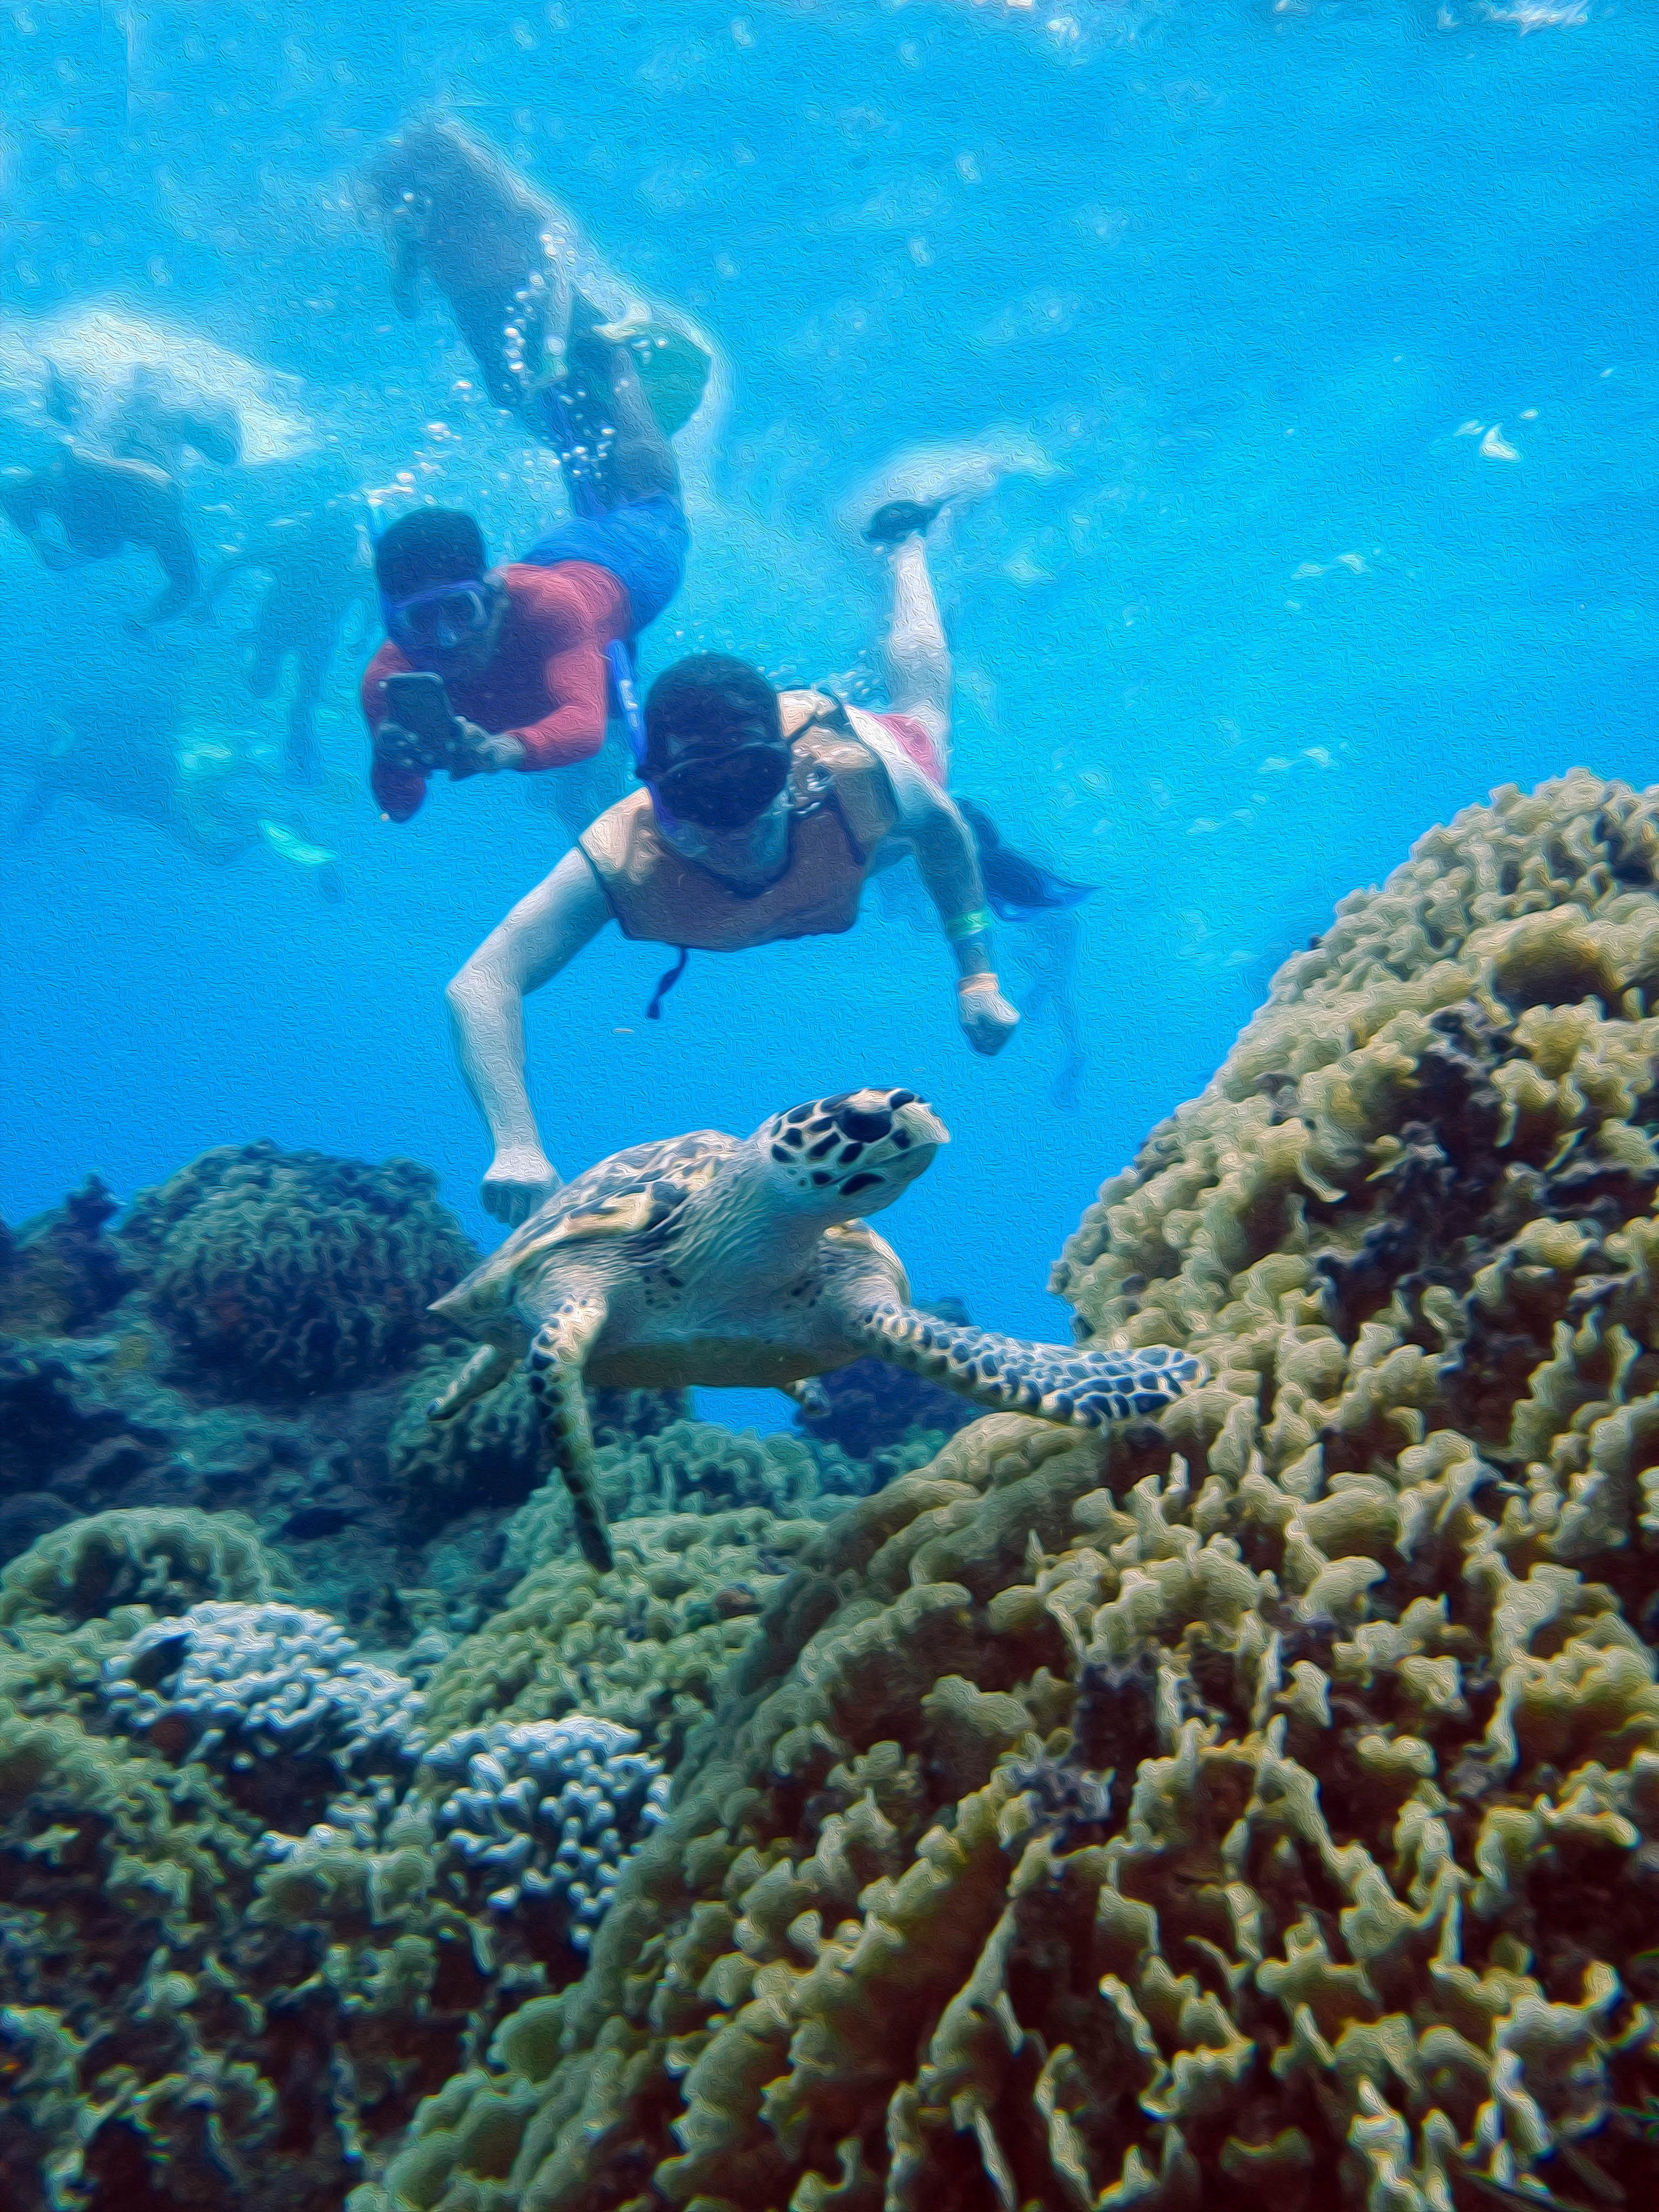 Las Vegas Excursions >> Cozumel Reef Snorkel The second largest barrier reef in the world. www.cancunadventour.com ...